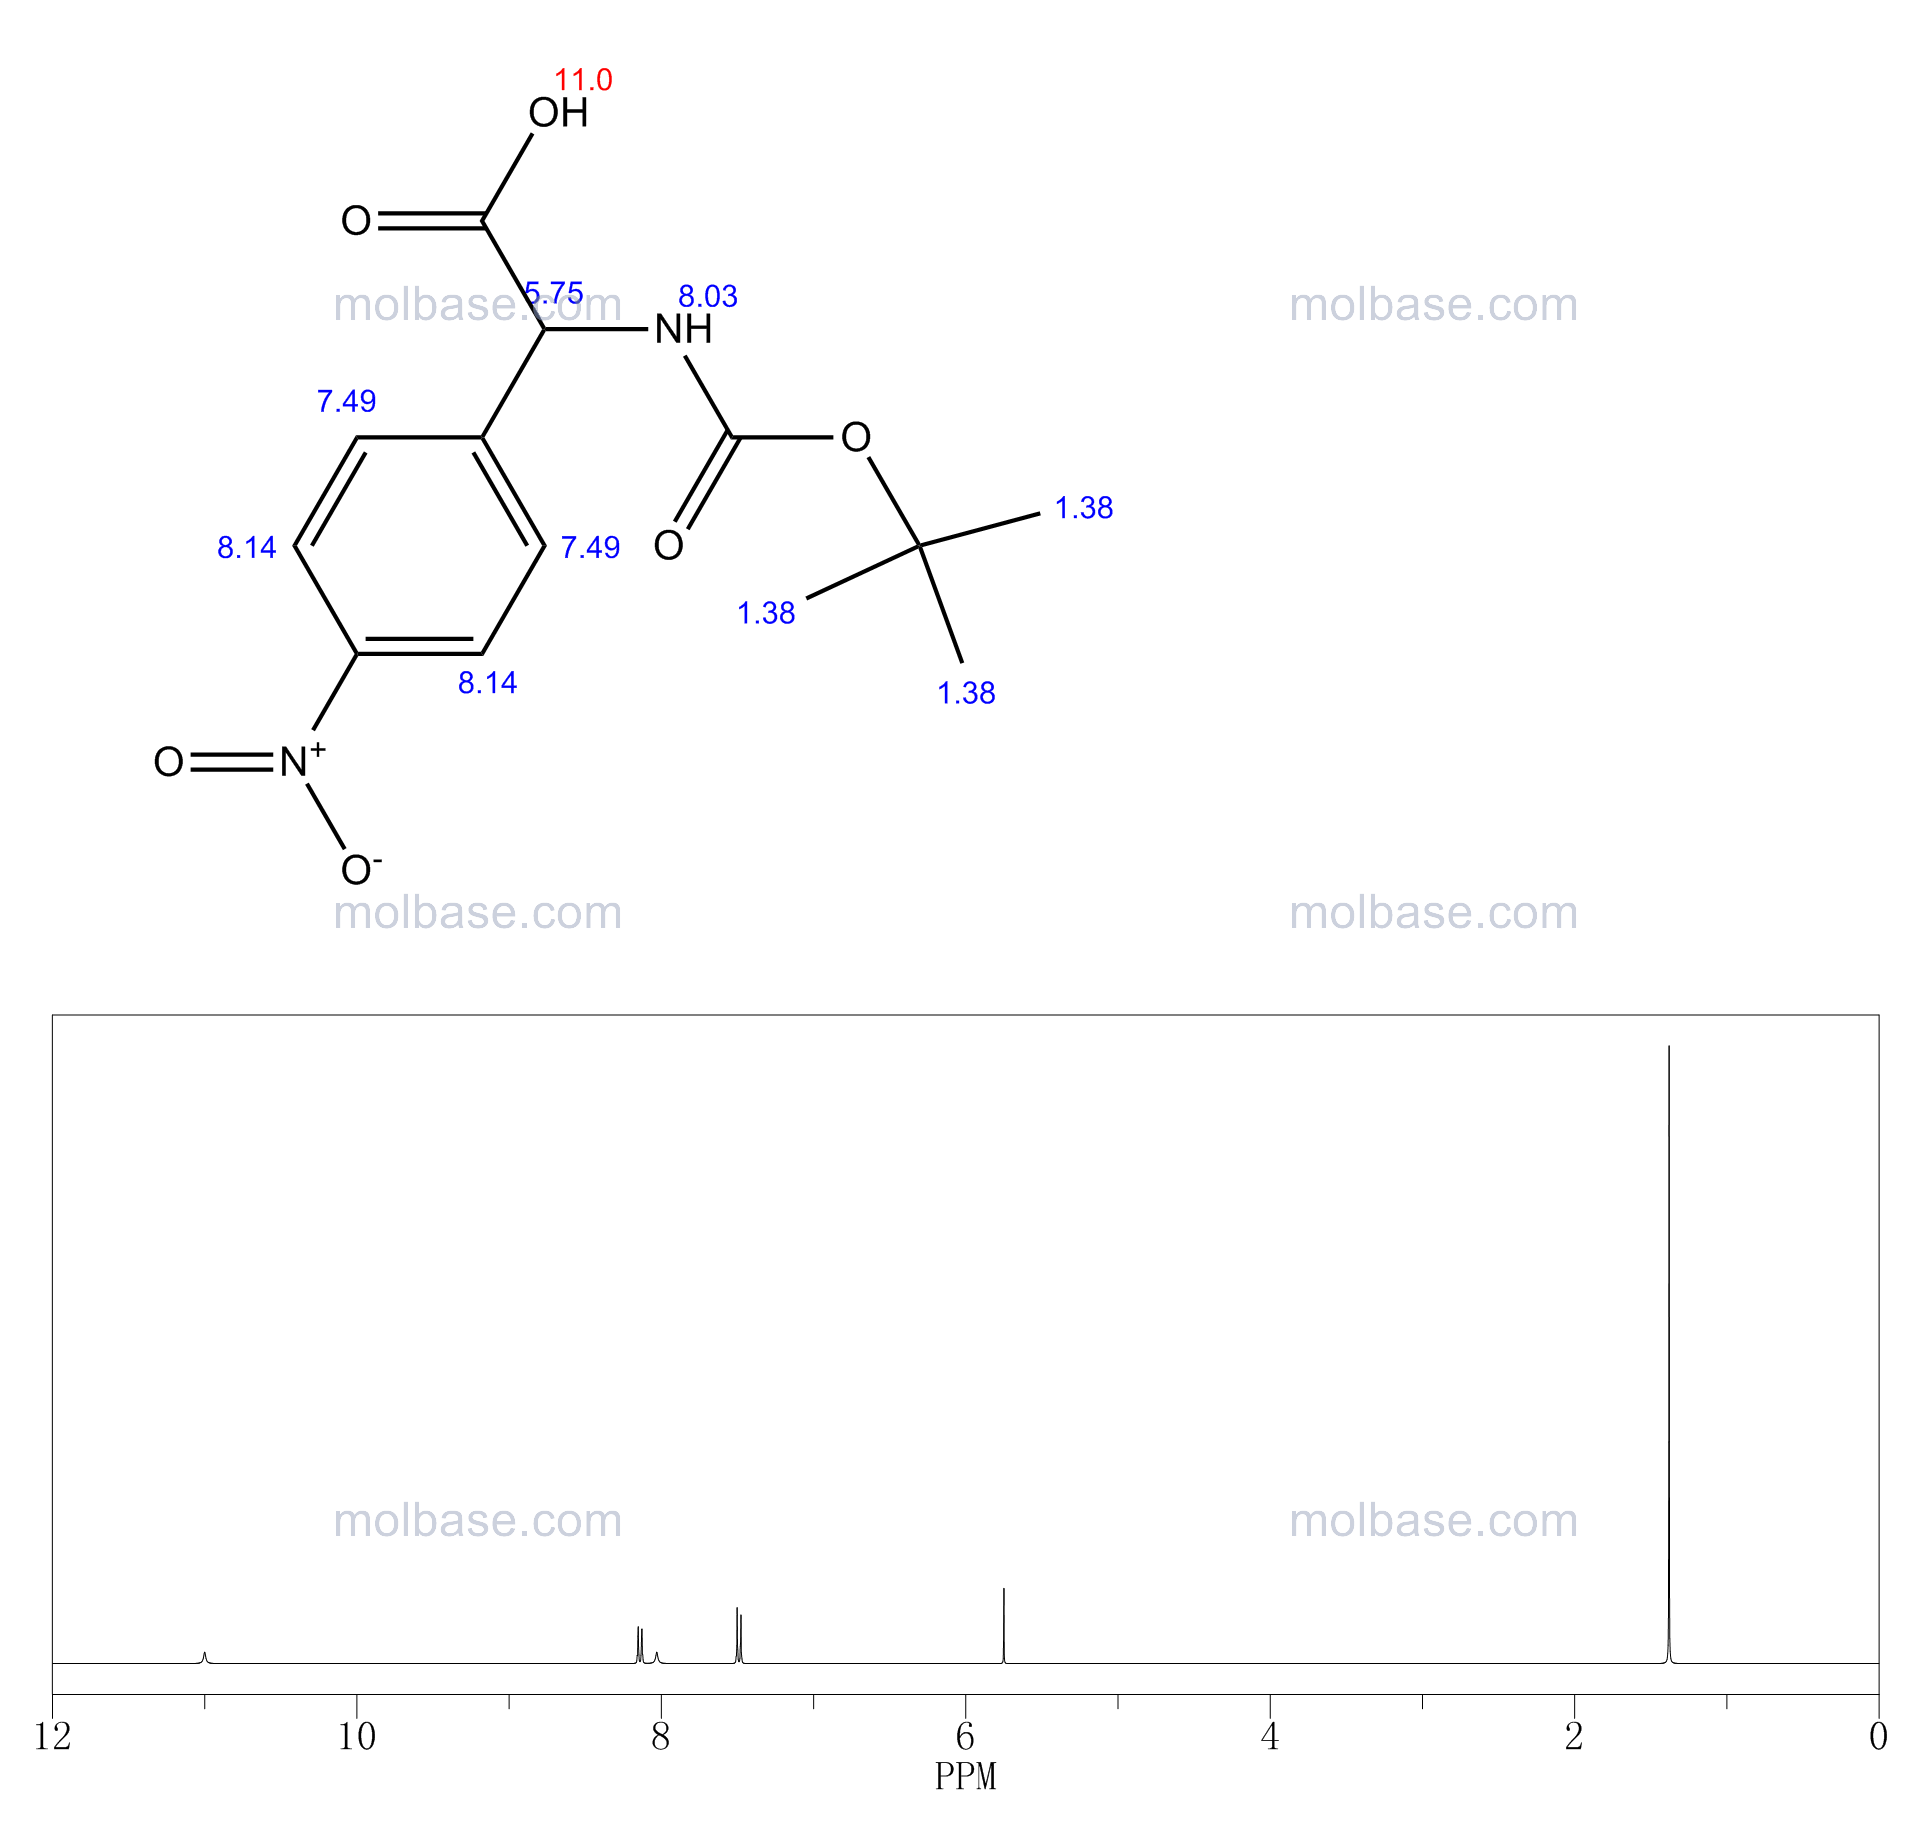 TERT-BUTOXYCARBONYLAMINO-(4-NITRO-PHENYL)-ACETIC ACID NMR spectra analysis, Chemical CAS NO. 115116-80-8 NMR spectral analysis, TERT-BUTOXYCARBONYLAMINO-(4-NITRO-PHENYL)-ACETIC ACID C-NMR spectrum